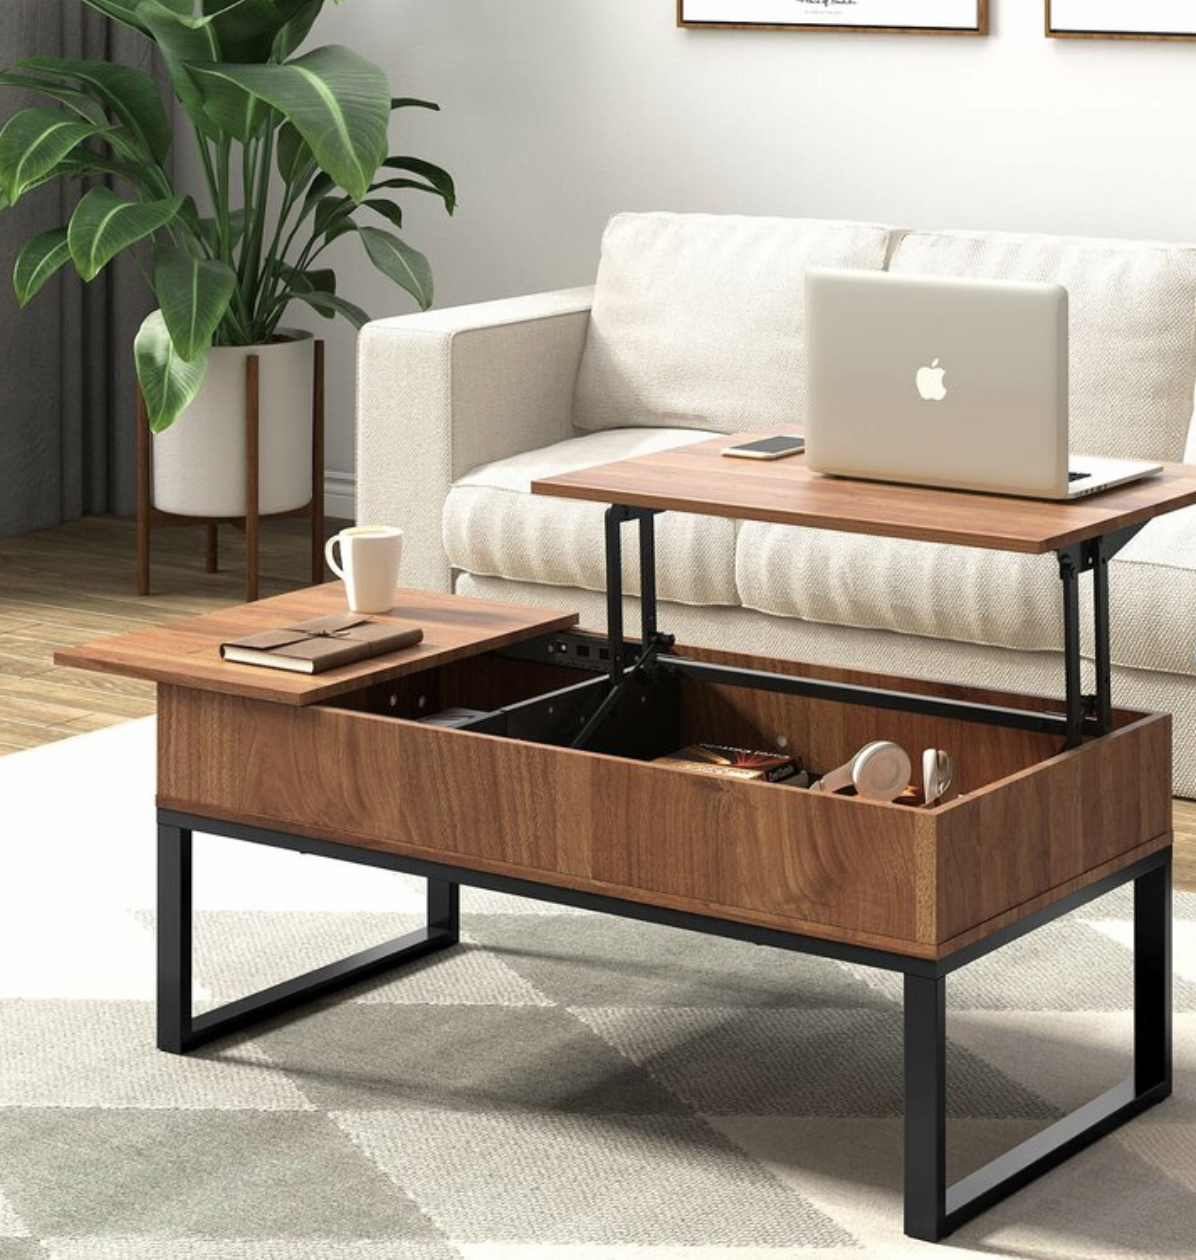 Valero Lift Top Extendable Sled Coffee Table With Storage Wood Lift Top Coffee Table Coffee Table Coffee Table With Hidden Storage [ 1260 x 1196 Pixel ]